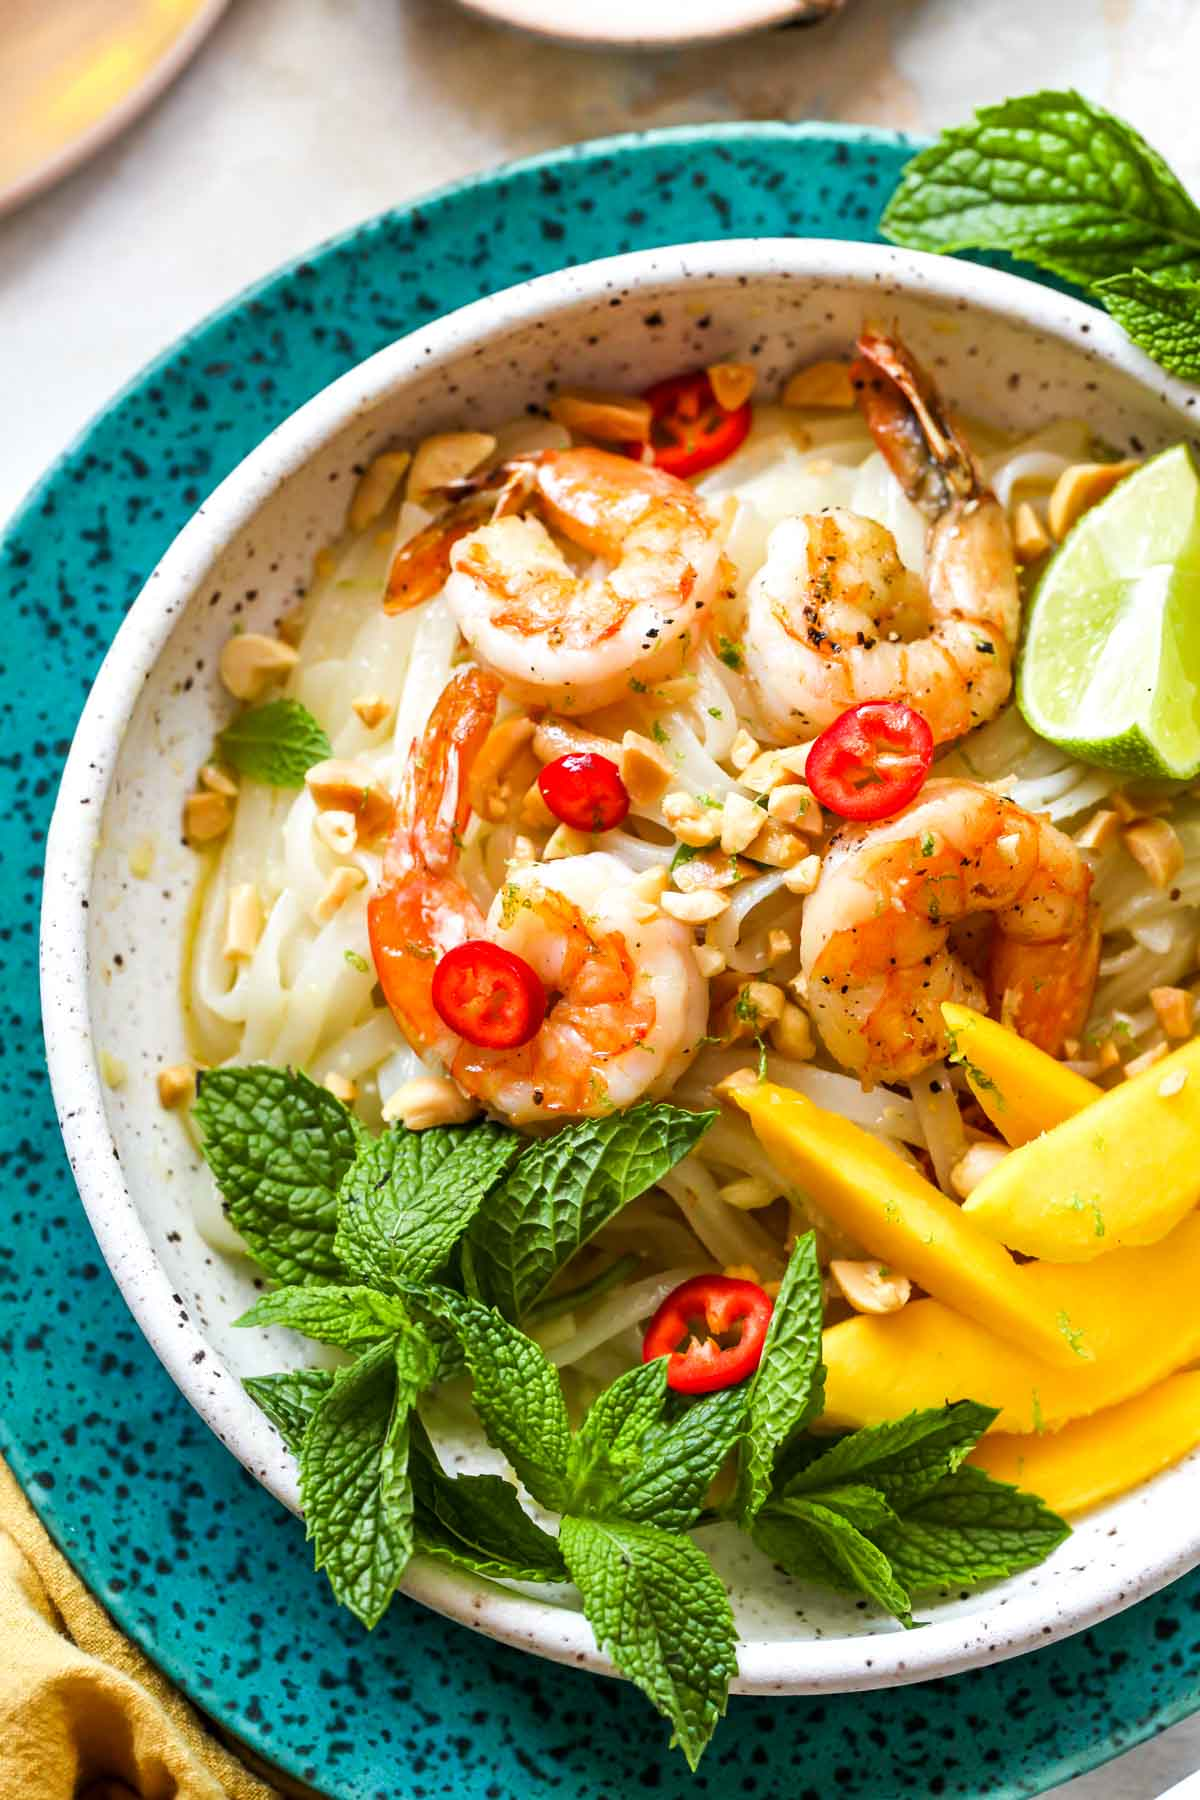 Shrimp and glass noodles in a bowl topped with mint and mango